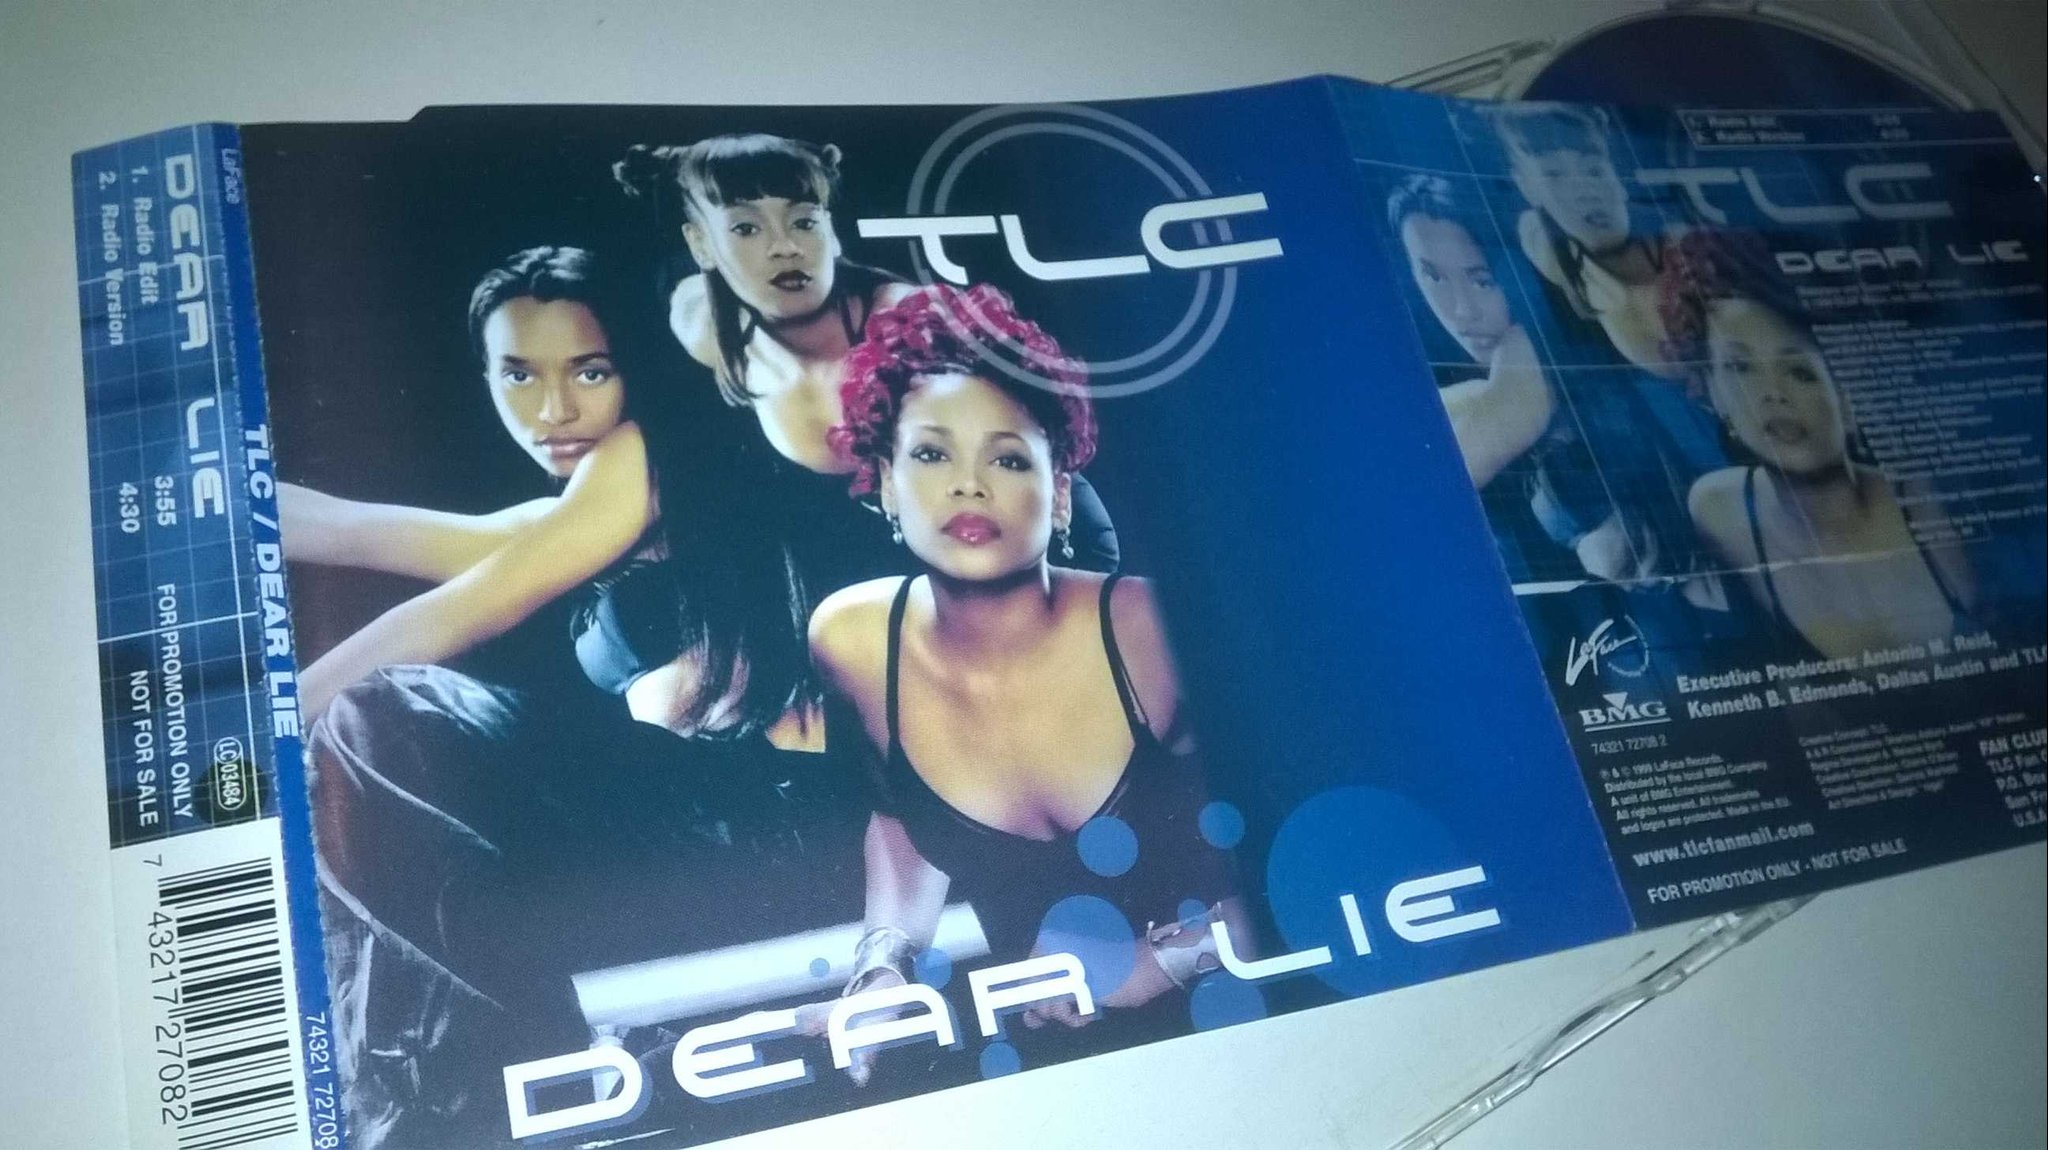 TLC - Dear Lie, CD, Single, Promo